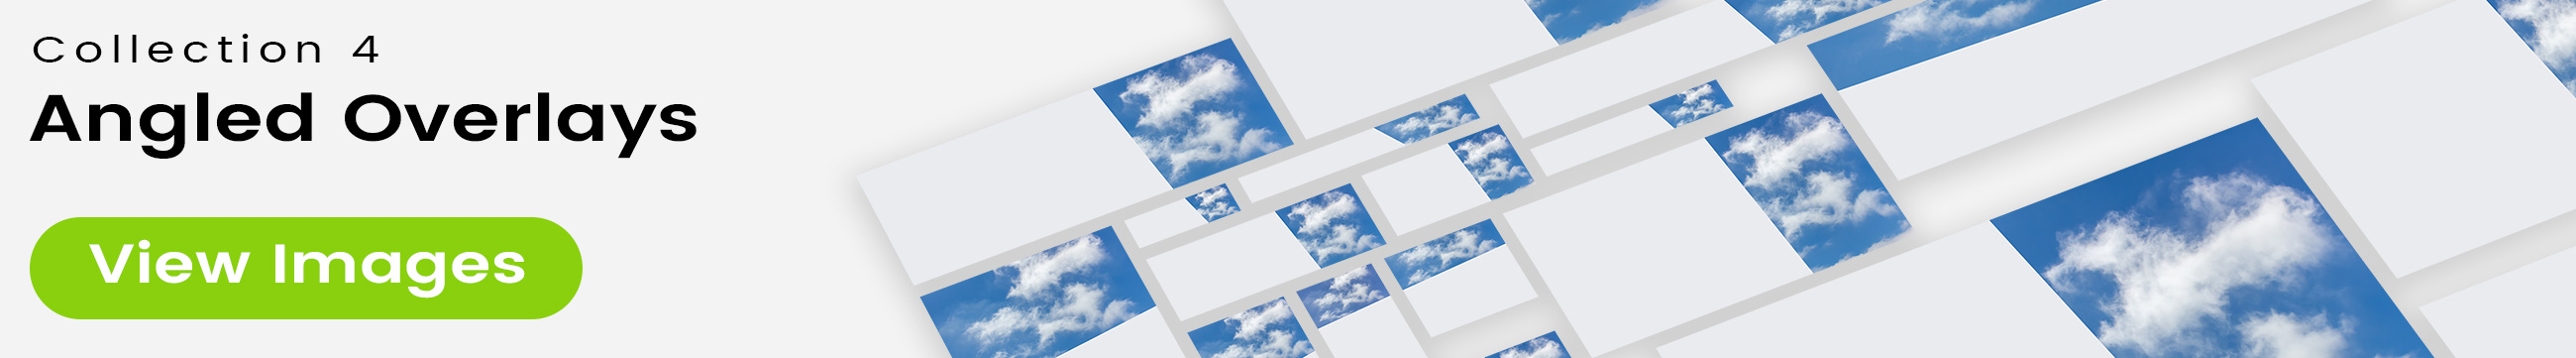 See 25 bonus images included with clouds stock image 9472. Collection 4 of 4 features an angled overlay design customized with a color that complements each photo.